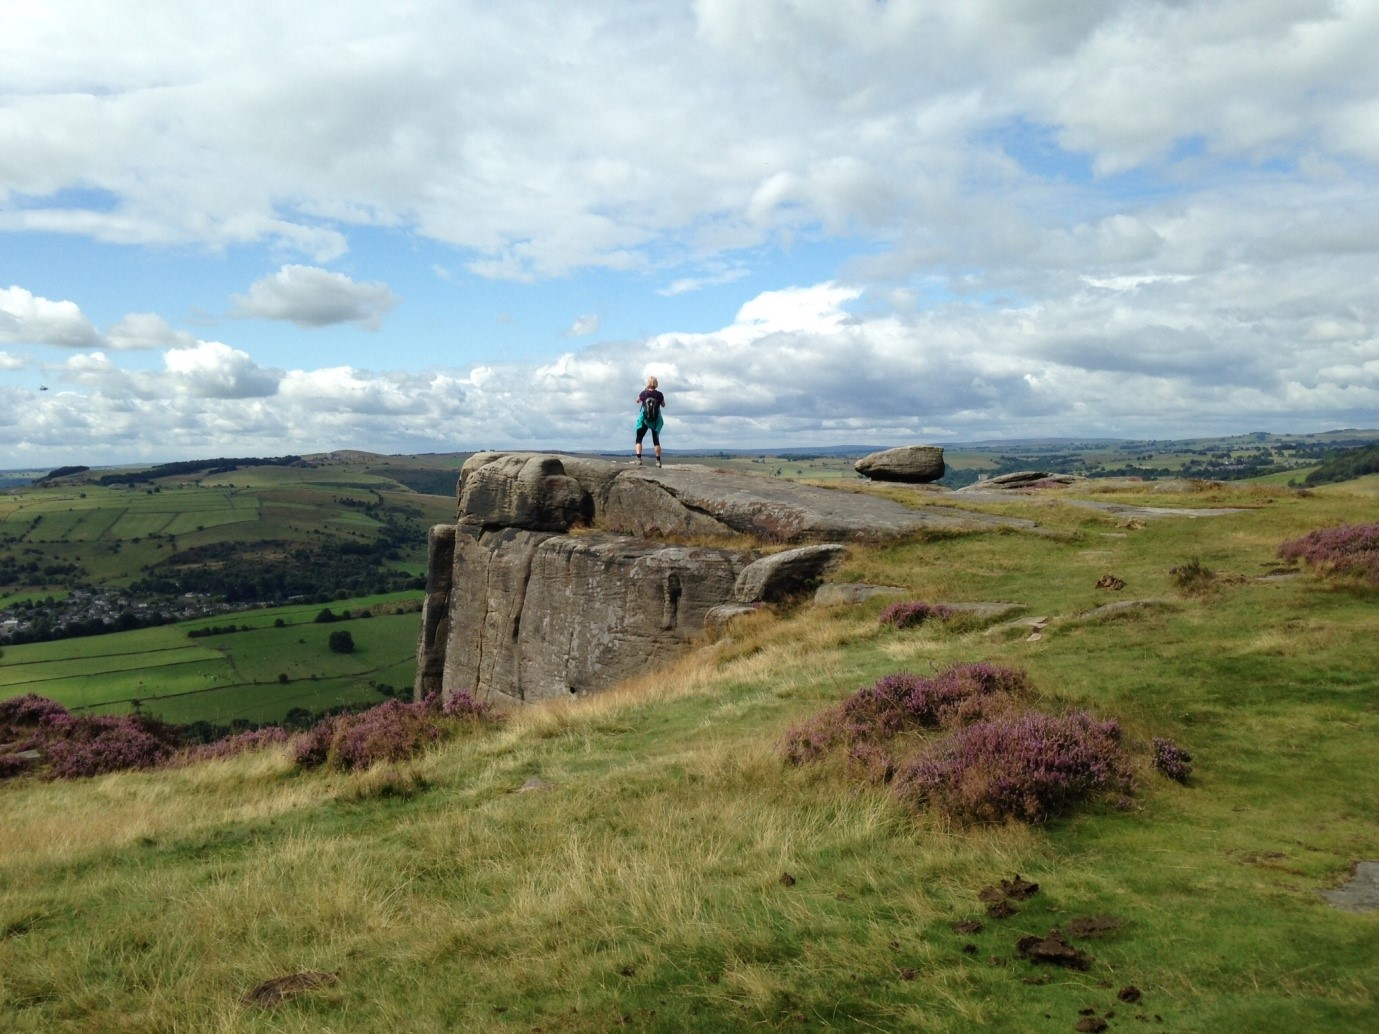 Nordic walking in the peak district